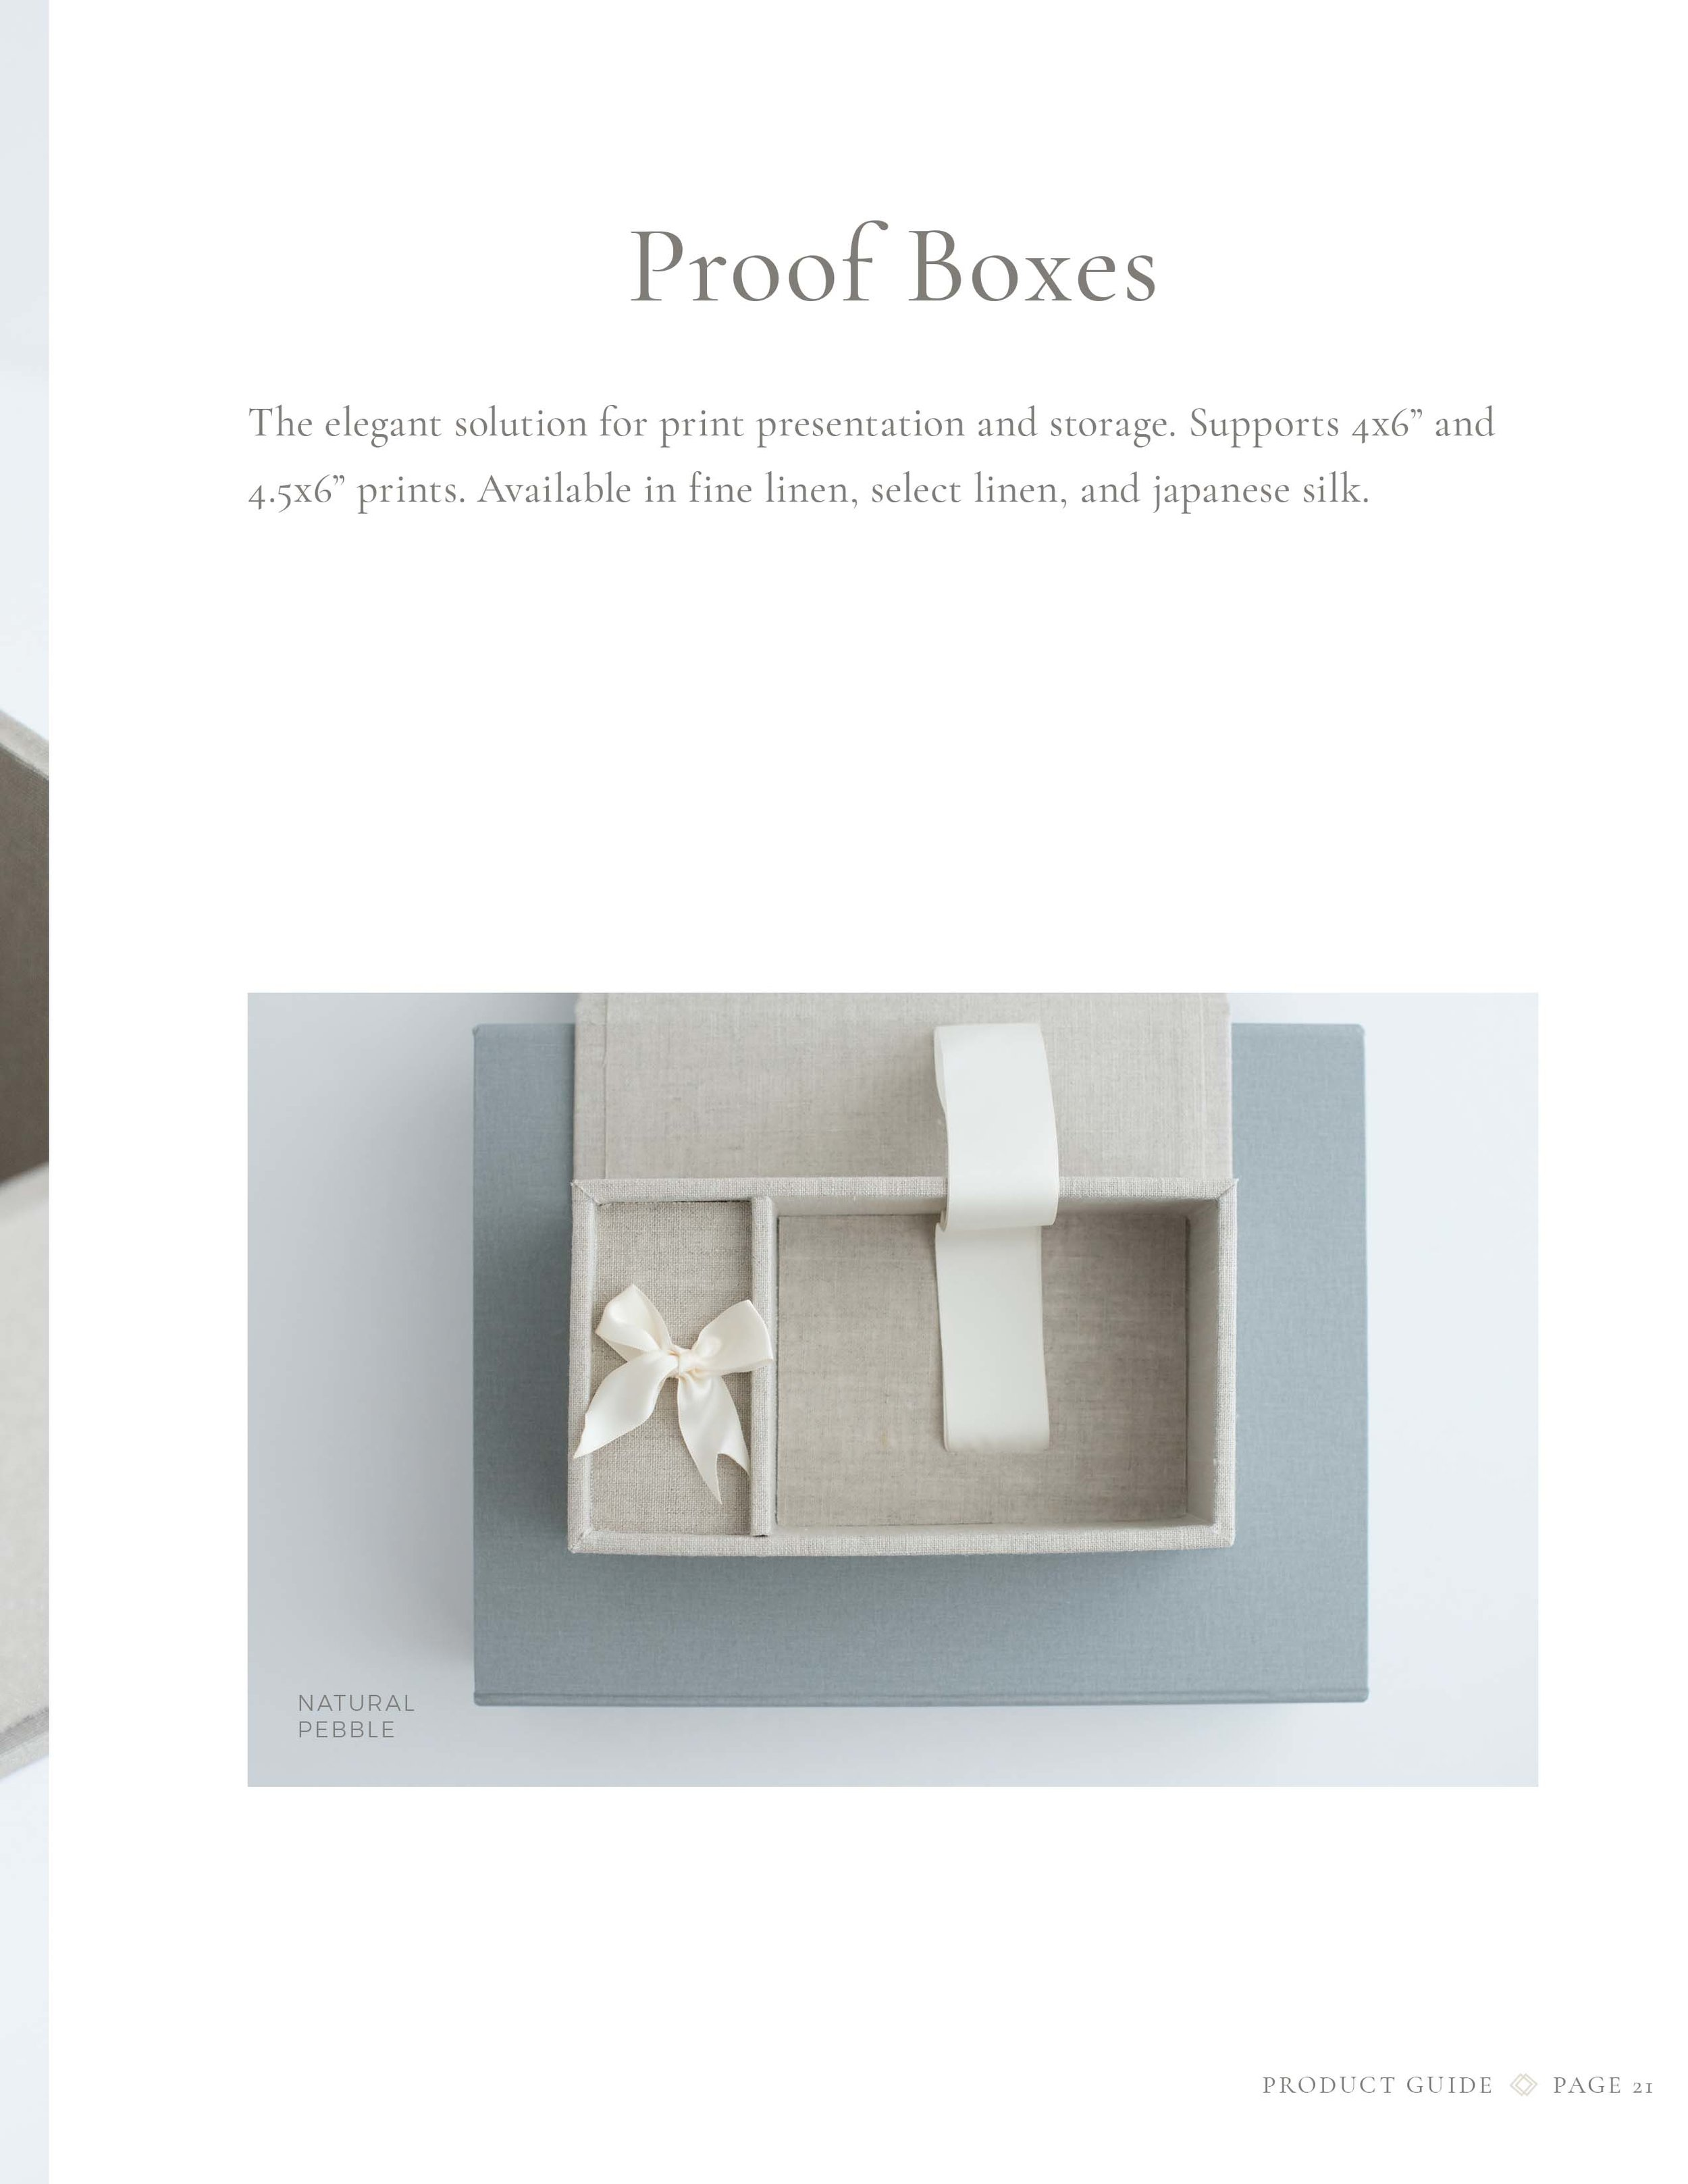 Product Guide-Albums & Proof Boxes -11b.jpg